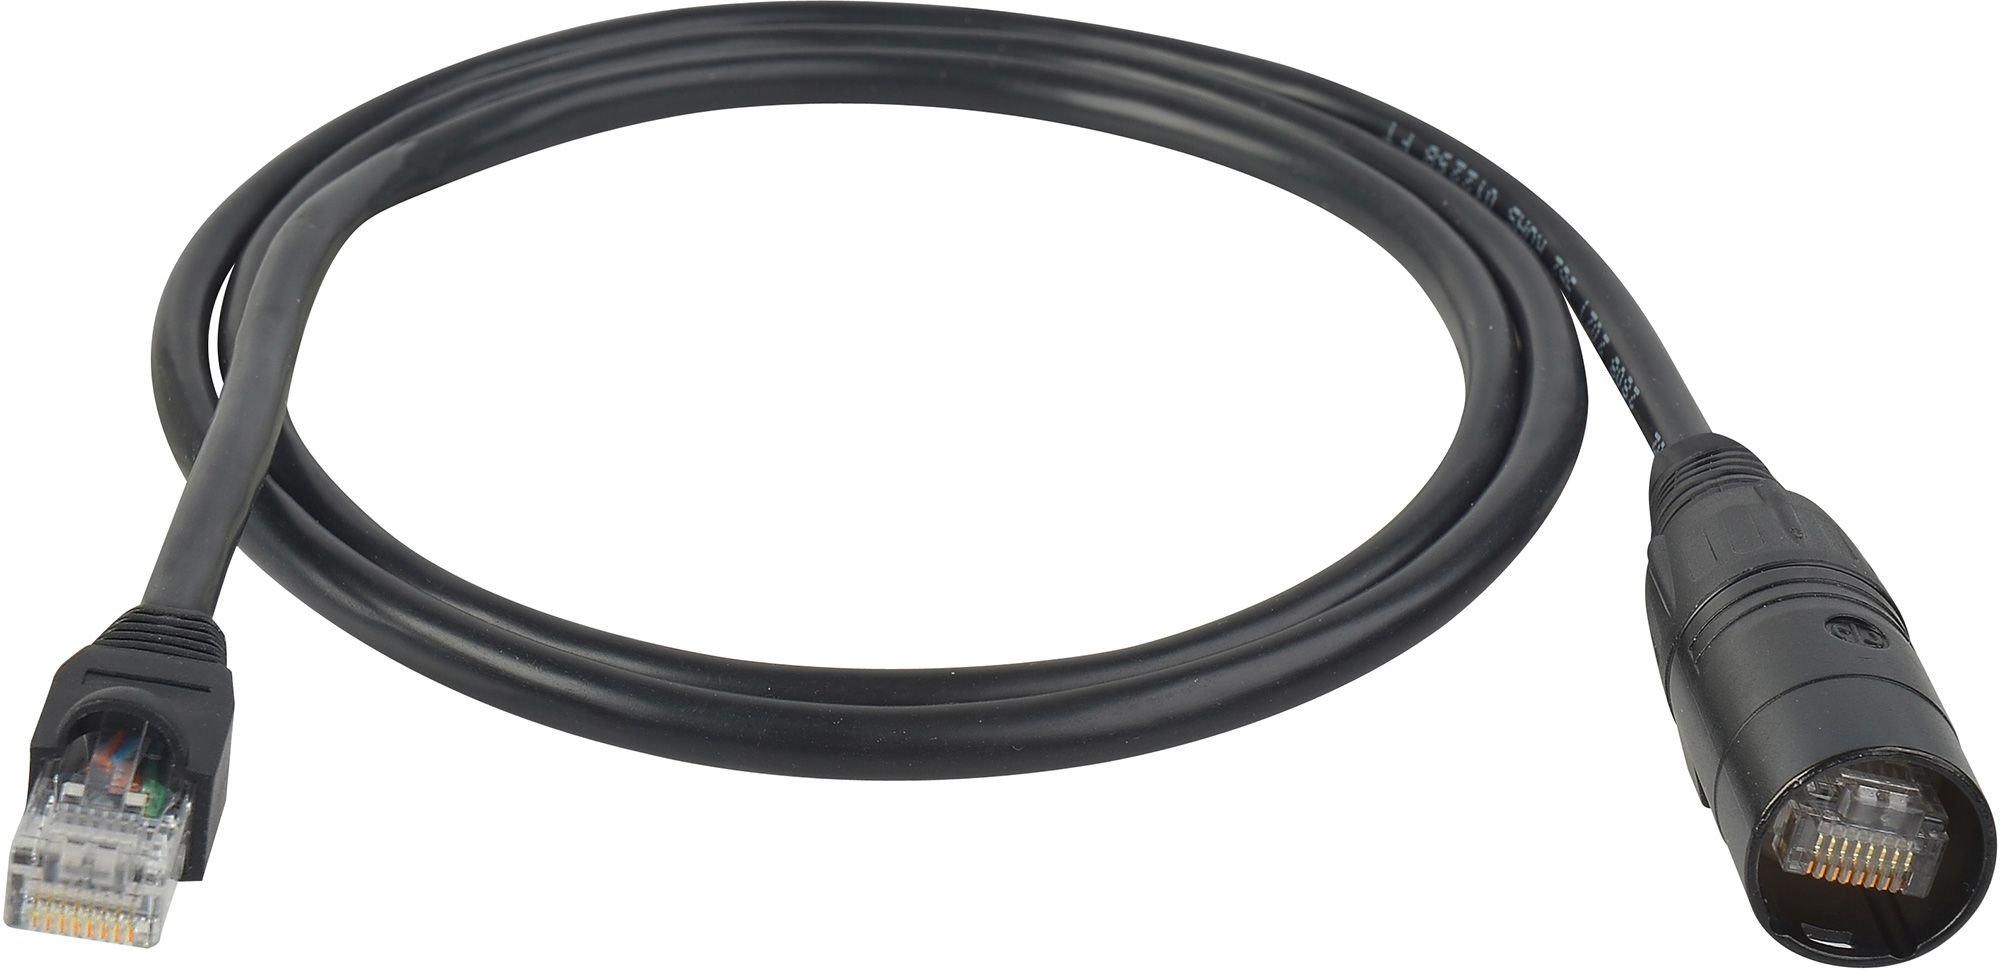 CAT 5e Cable 60 or 100 Feet with RJ45 Connectors on Both Ends